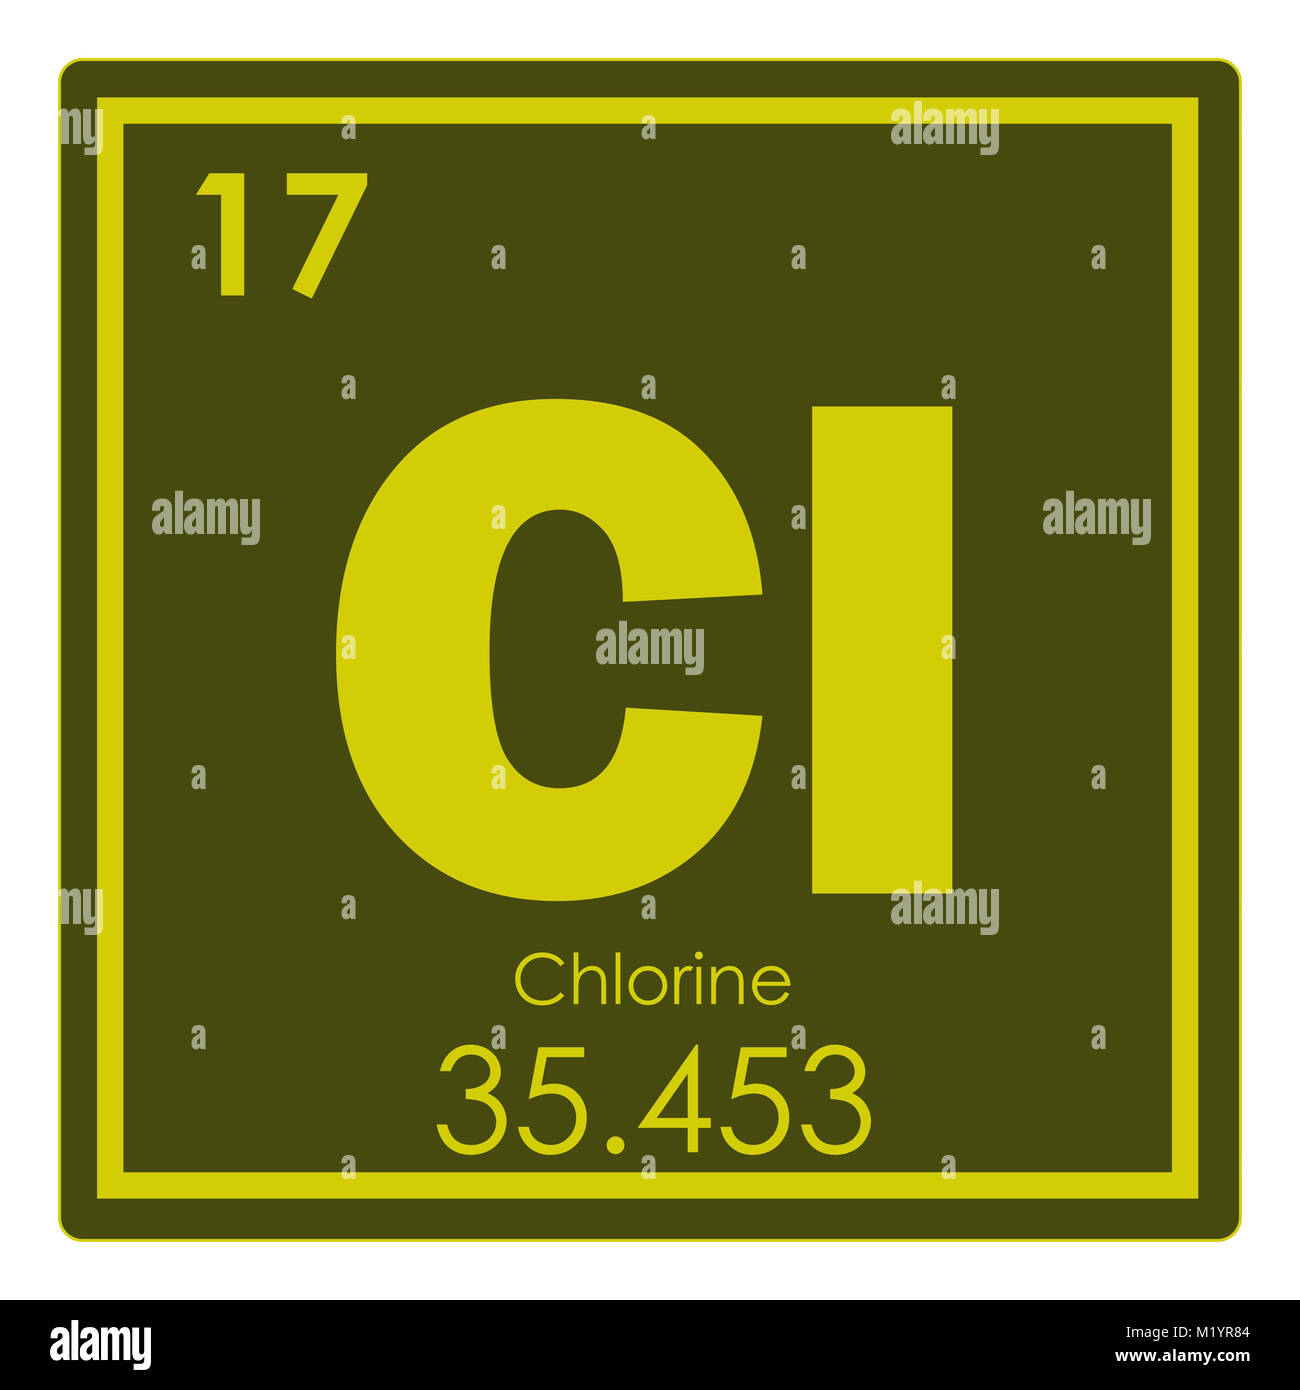 Periodic table symbol for chlorine image collections periodic chlorine chemical element periodic table science symbol stock photo urtaz Image collections